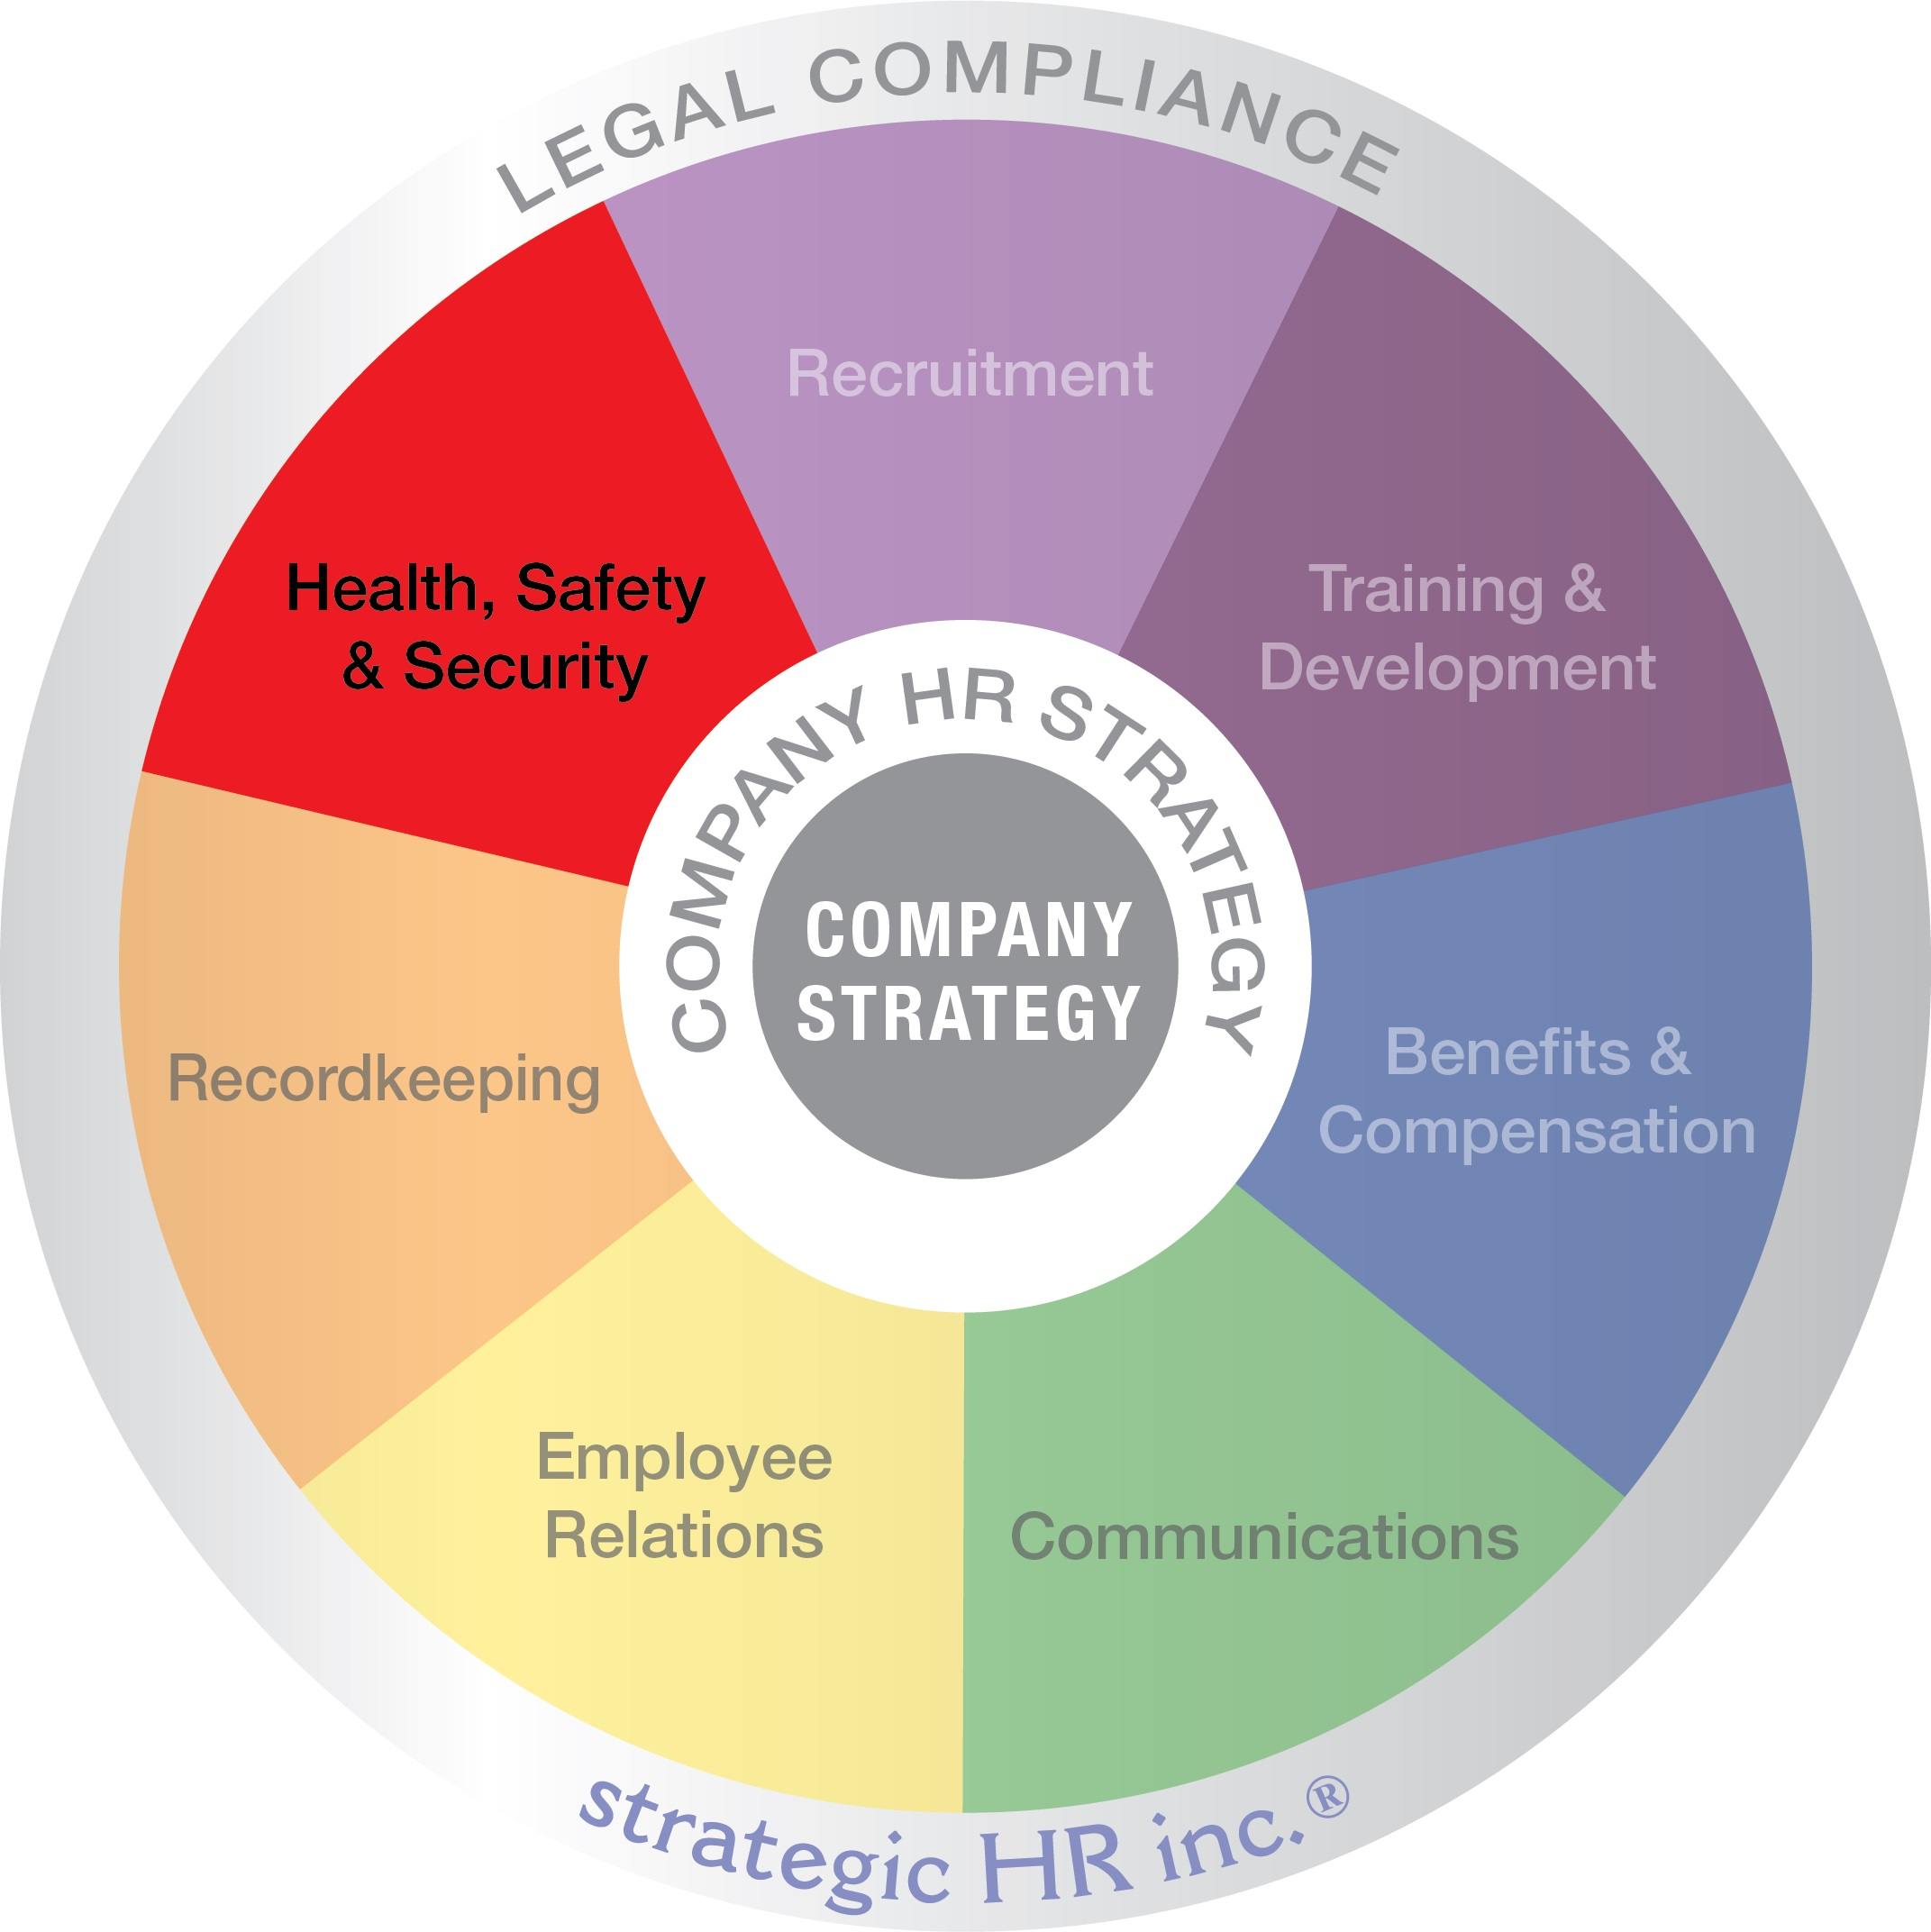 strategic HR Wheel of Services - Emphasis on Health, Safety & Security